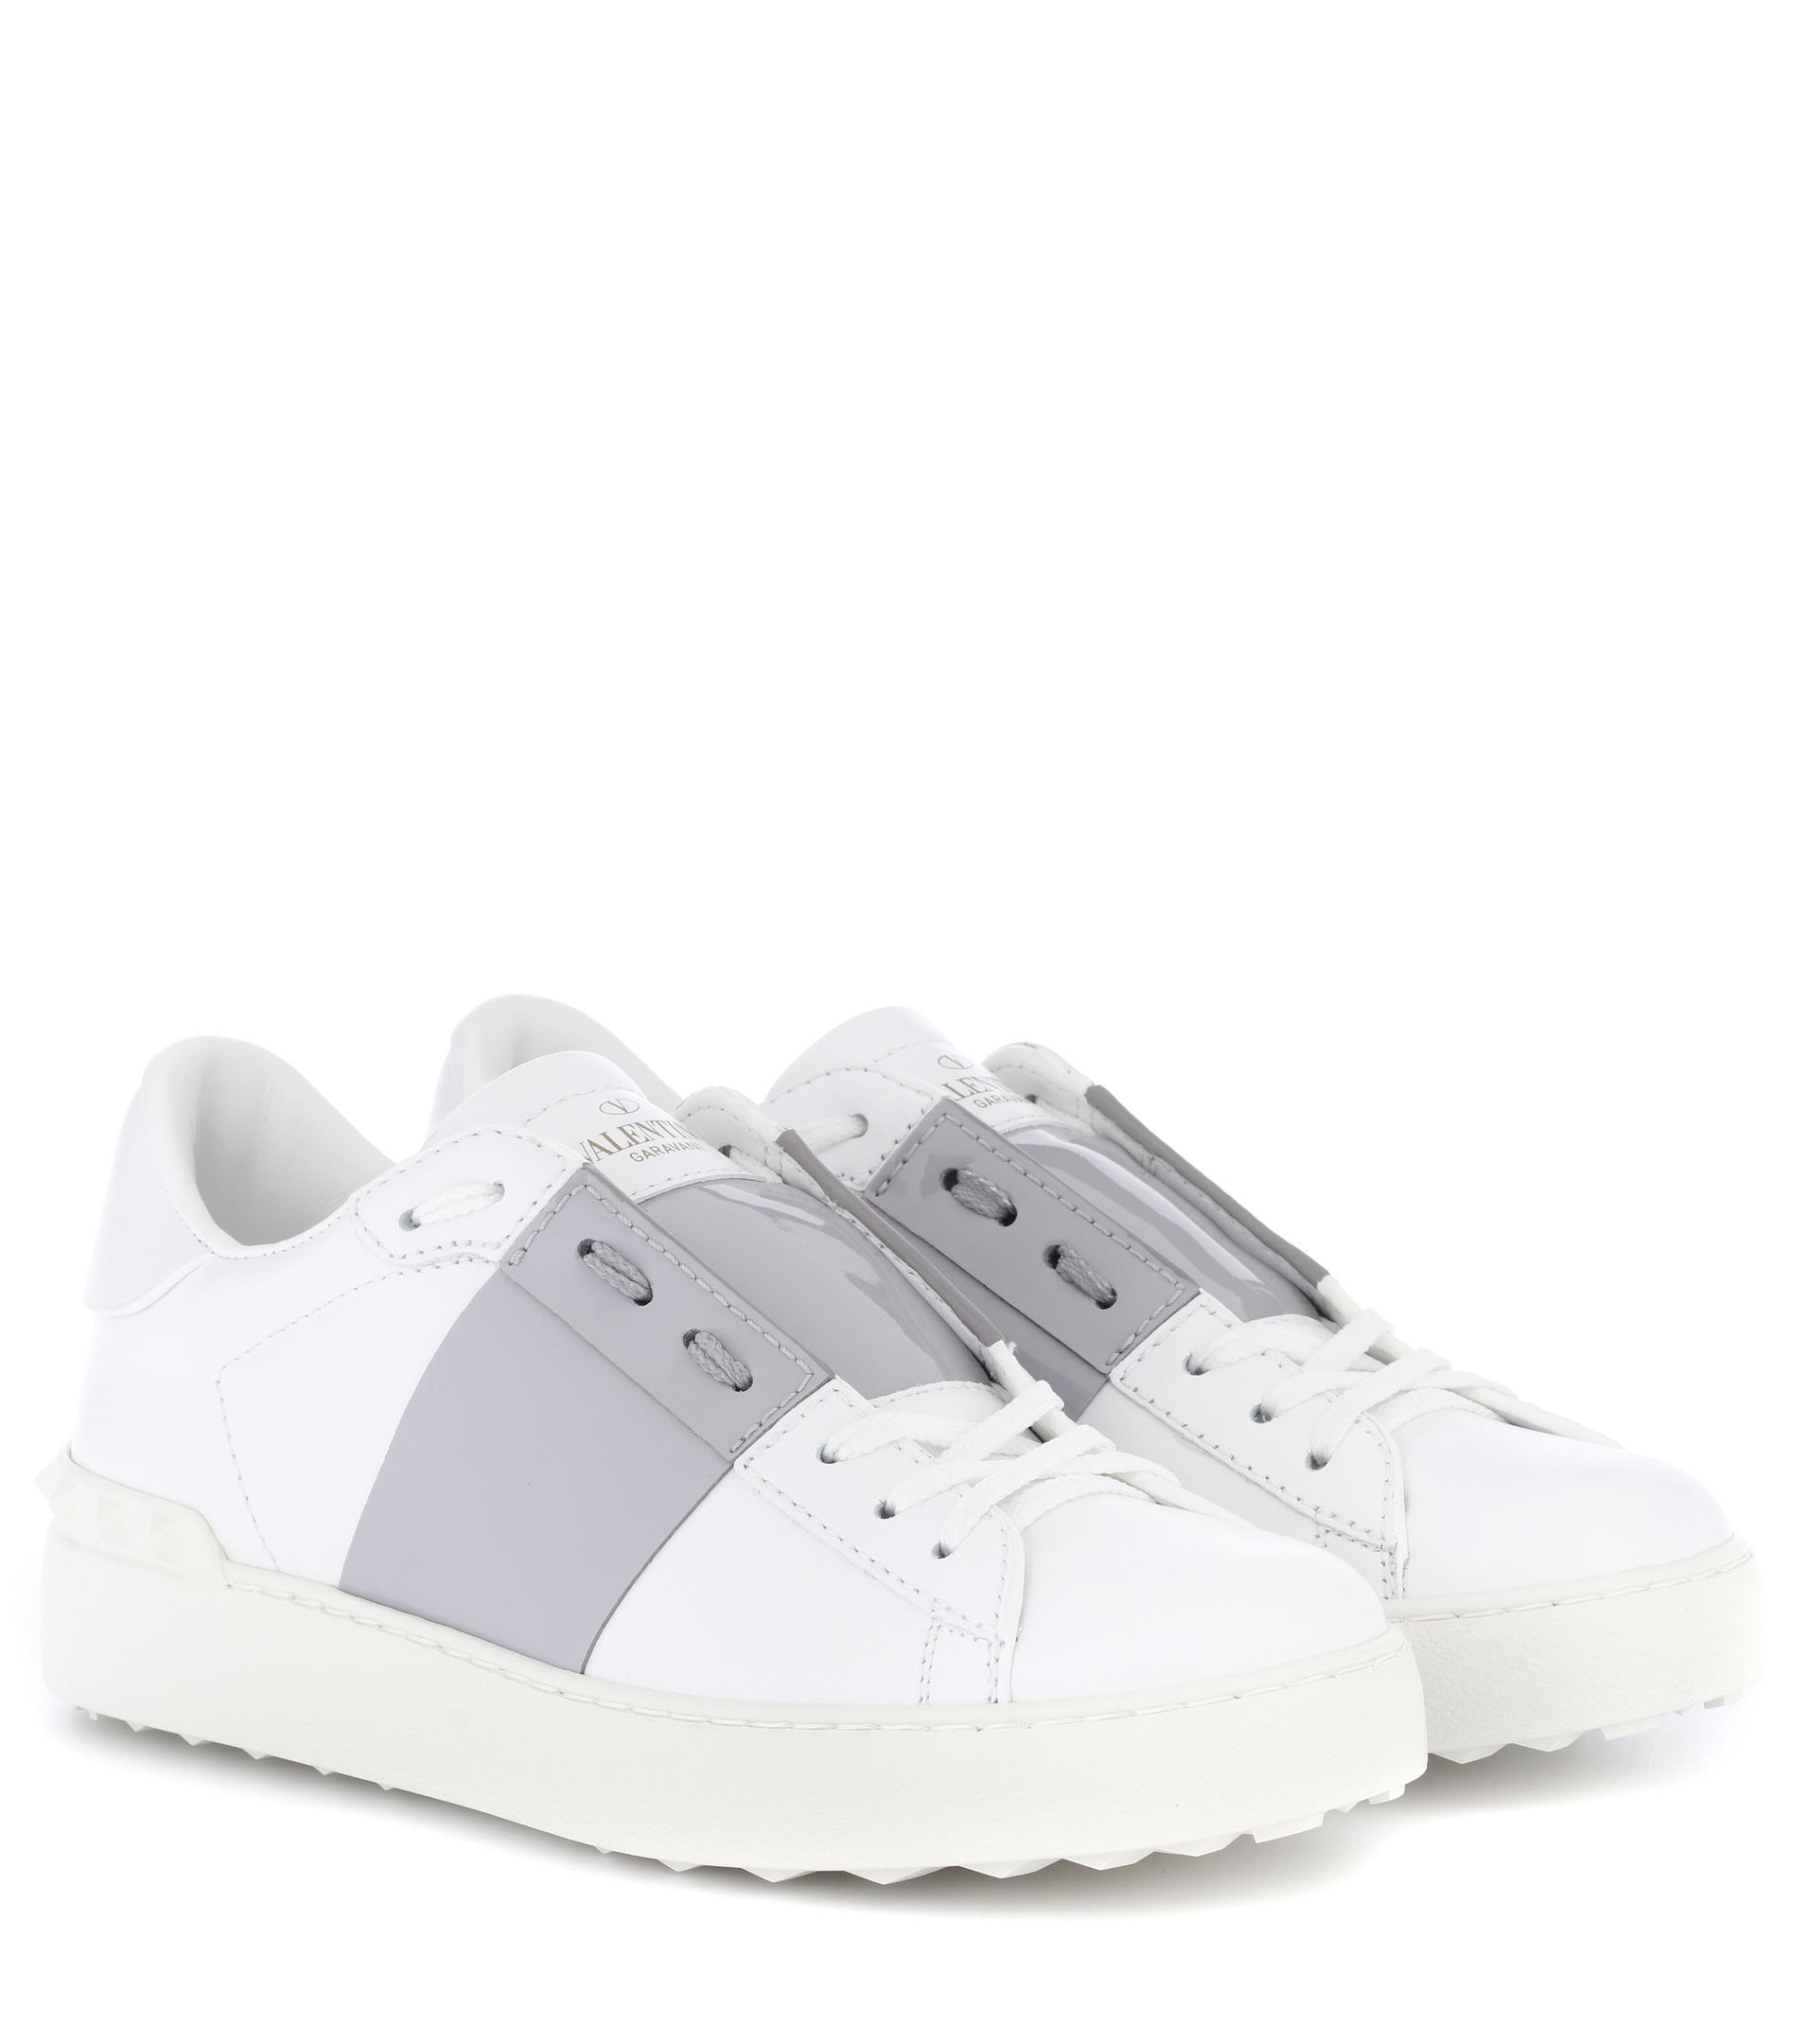 Charlotte Olympia White & Pink Valentino Garavani Rockstud Open Sneakers clearance reliable outlet discount outlet real visit cheap online pictures Tl2S7fa8